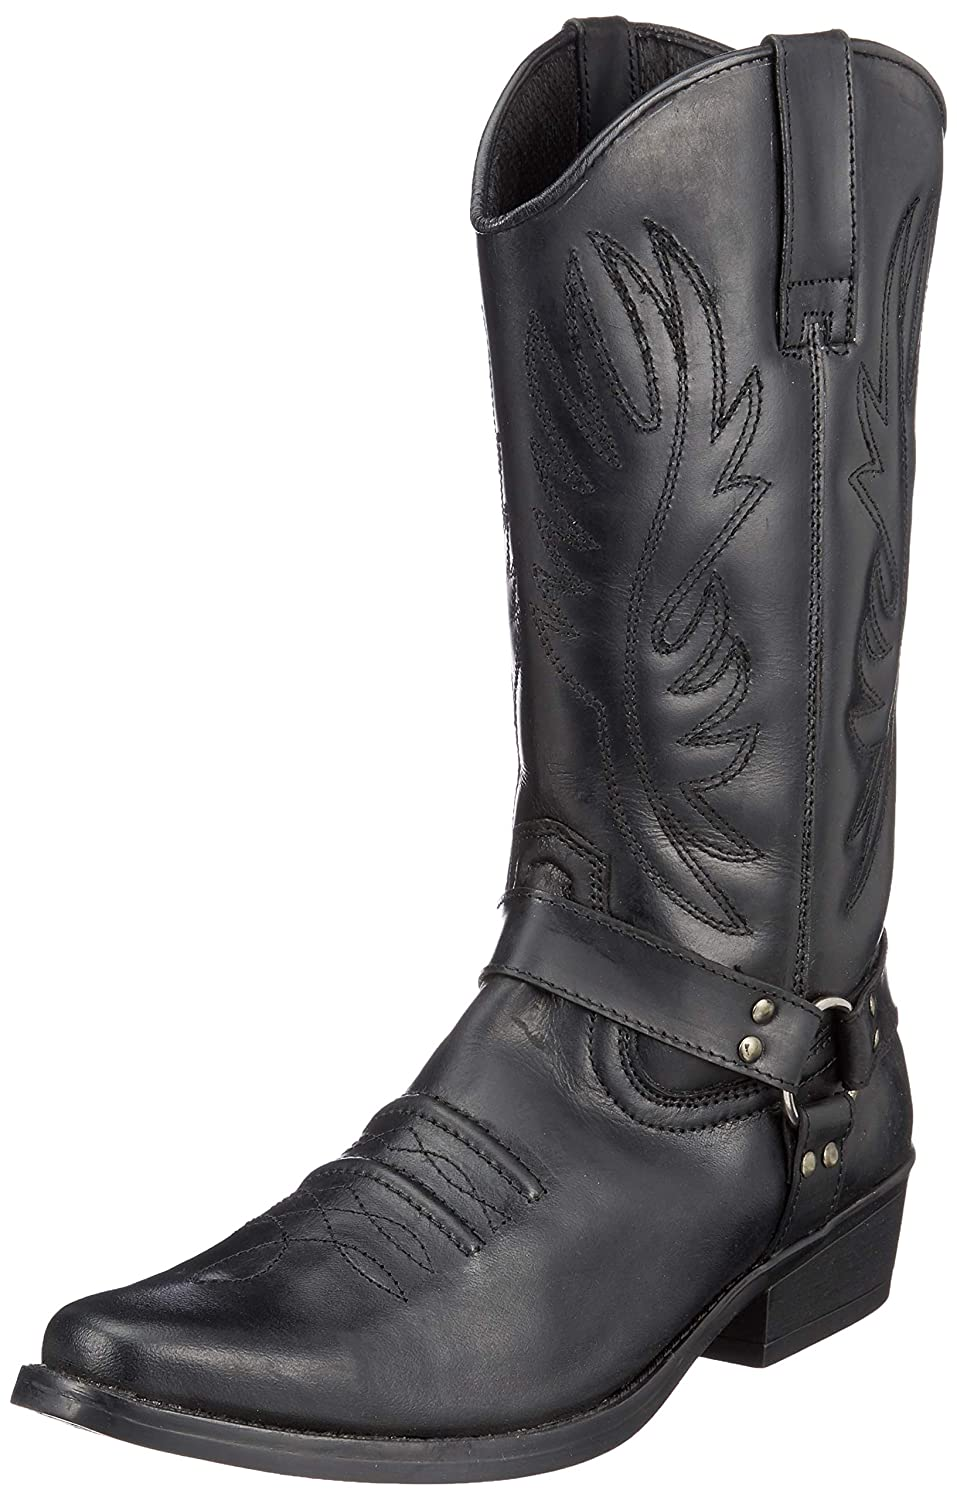 Mens Leather Cowboy Pull On Western Harness Cuban Heel Smart Ankle Boots UK 6-13